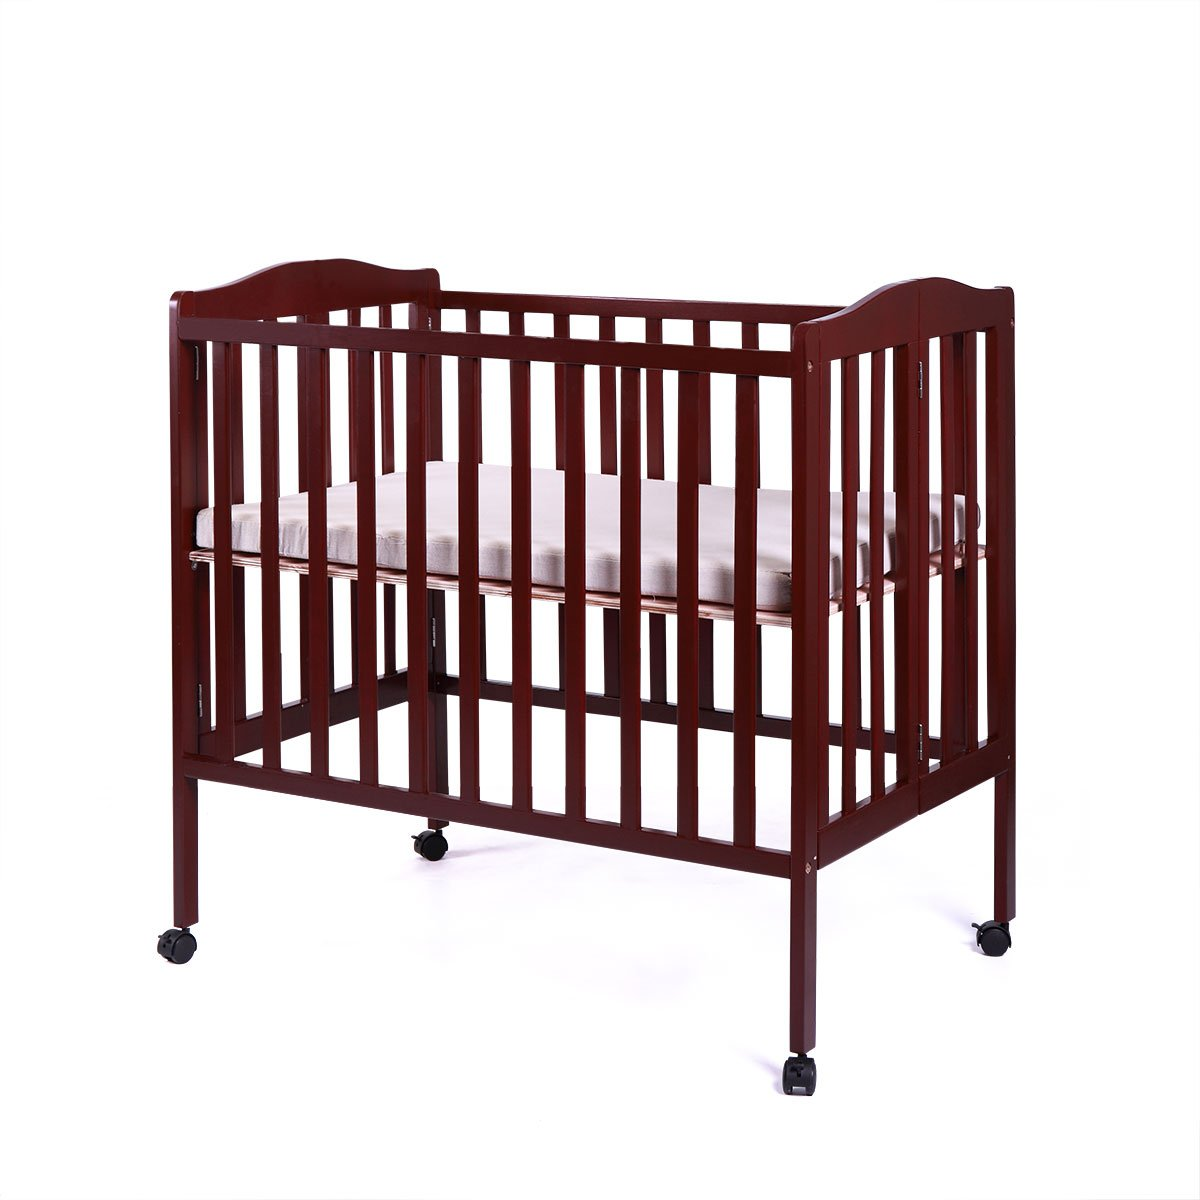 JAXPETY Baby Toddler Bed Pine Wood Nursery Furniture Safety Newborn Coffee